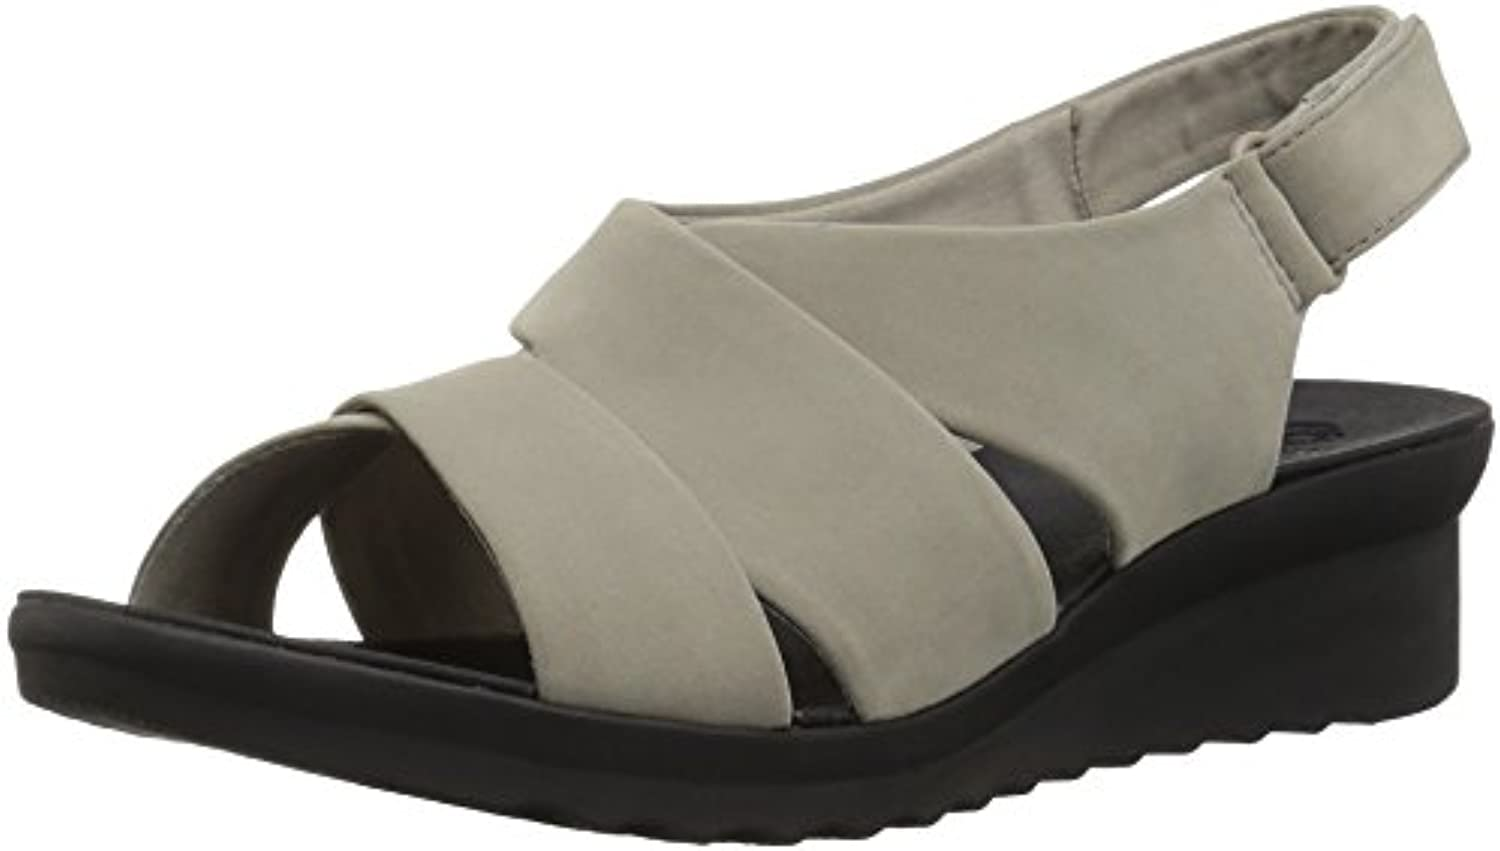 Clarks Wouomo Caddell Petal Platform, Sand Sand Sand Synthetic Nubuck, 9.5 Medium US | Nuovo